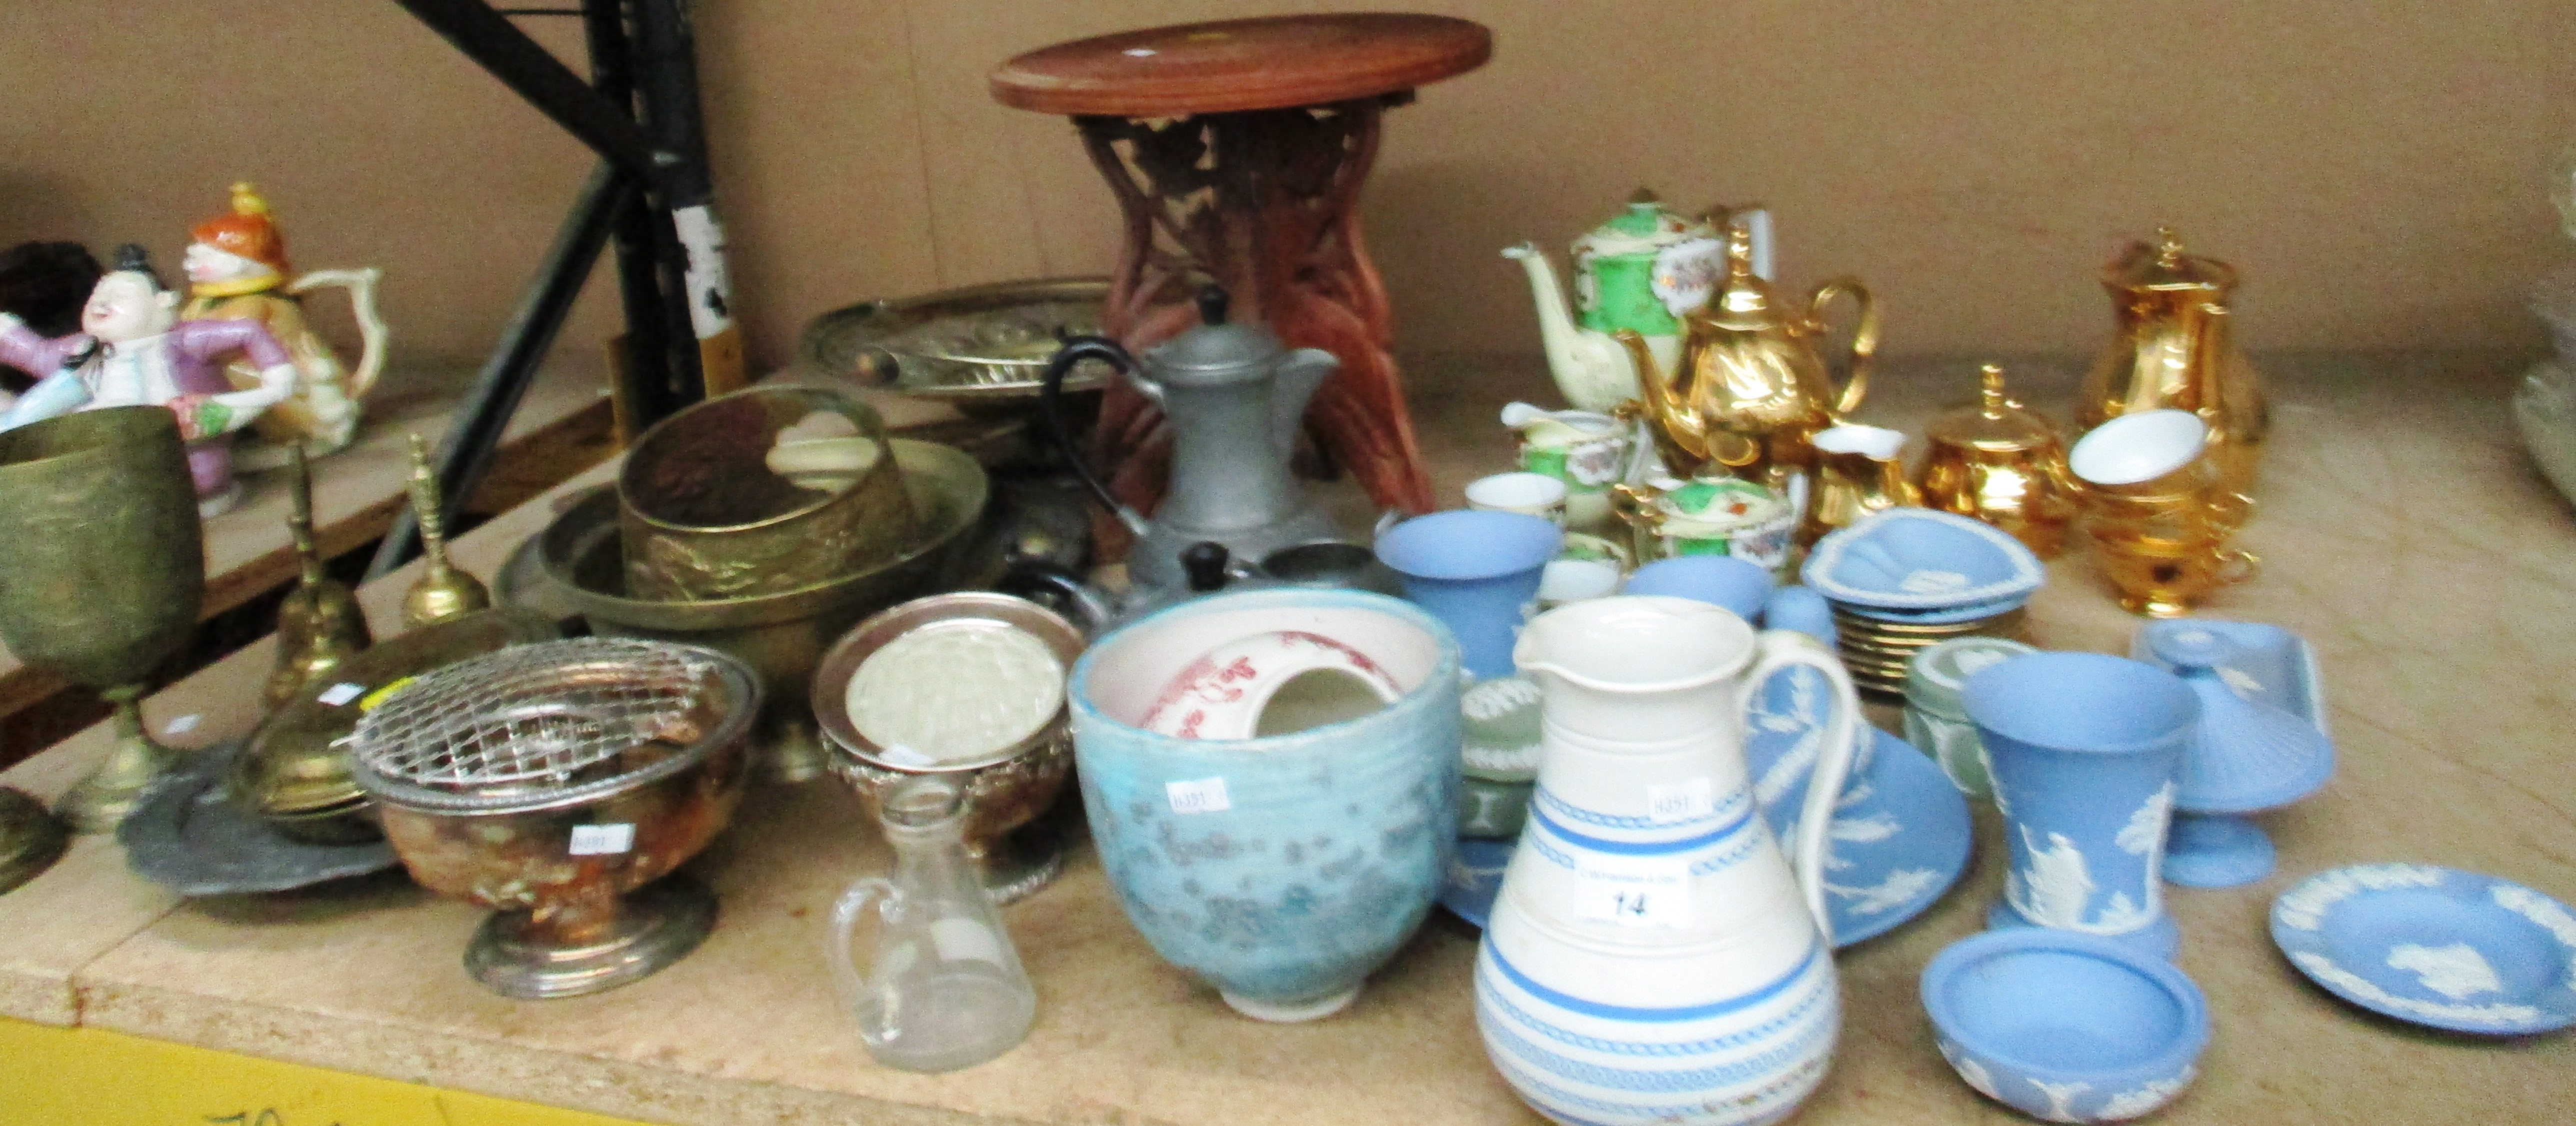 Lot 14 - Remaining contents to rack brass and metalware, Wedgwood blue patterned pottery,